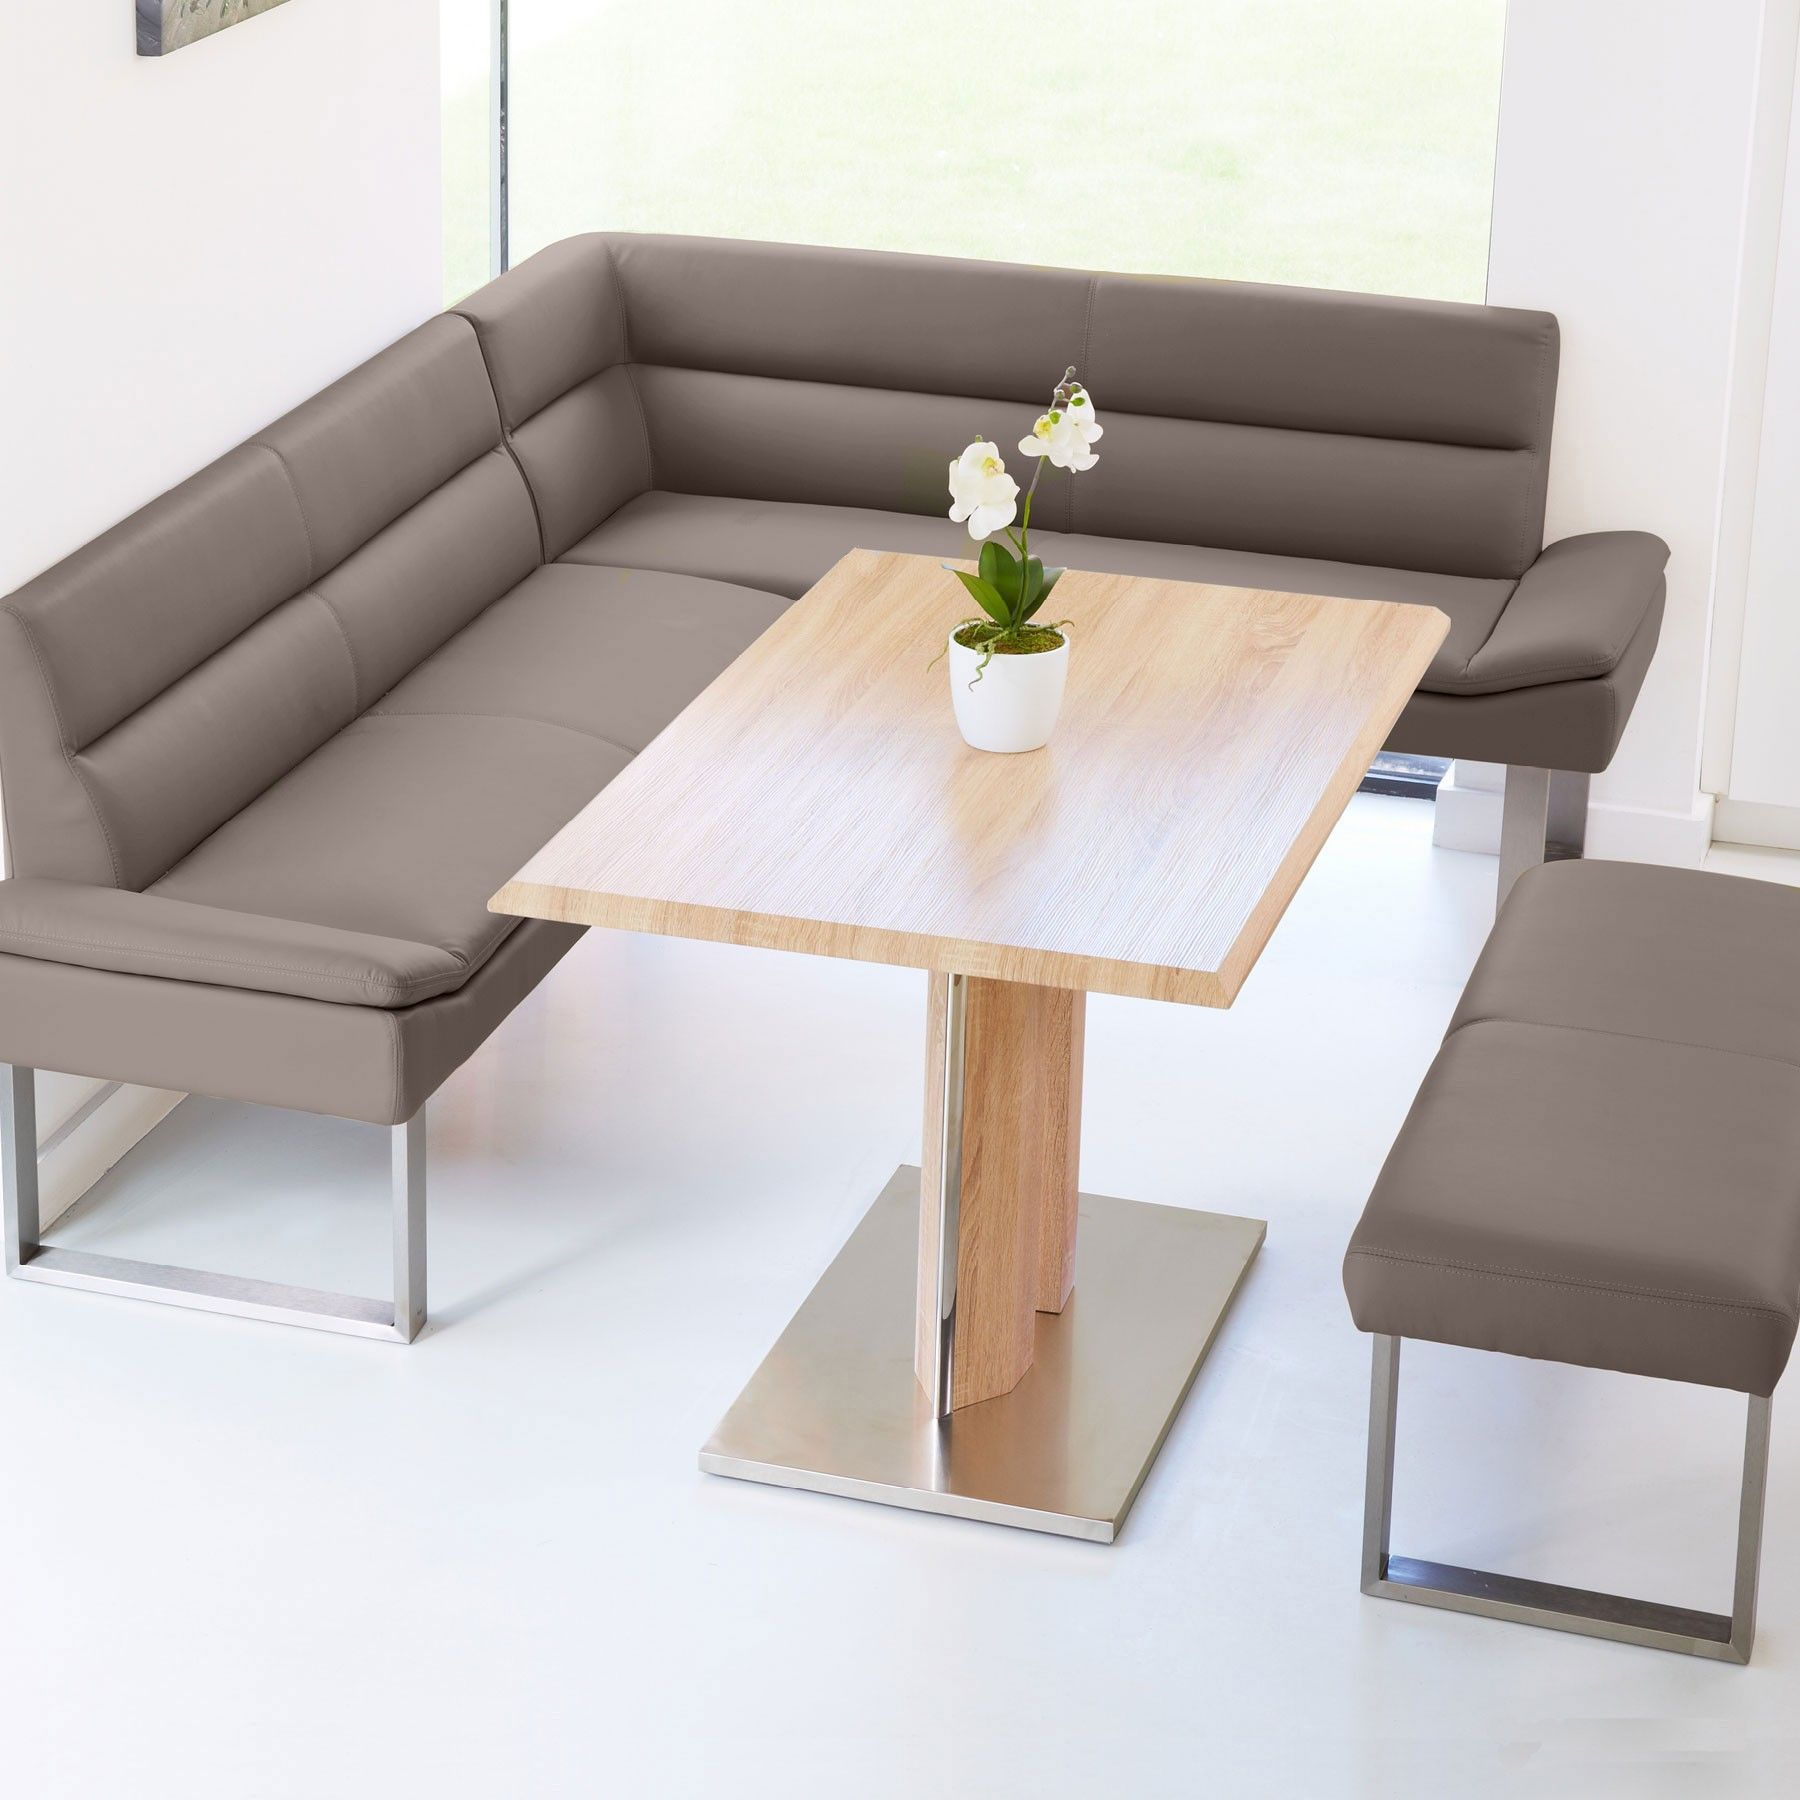 Kitchen Dining Sets With Benches: Lewis Left Hand Corner Bench Dining Set